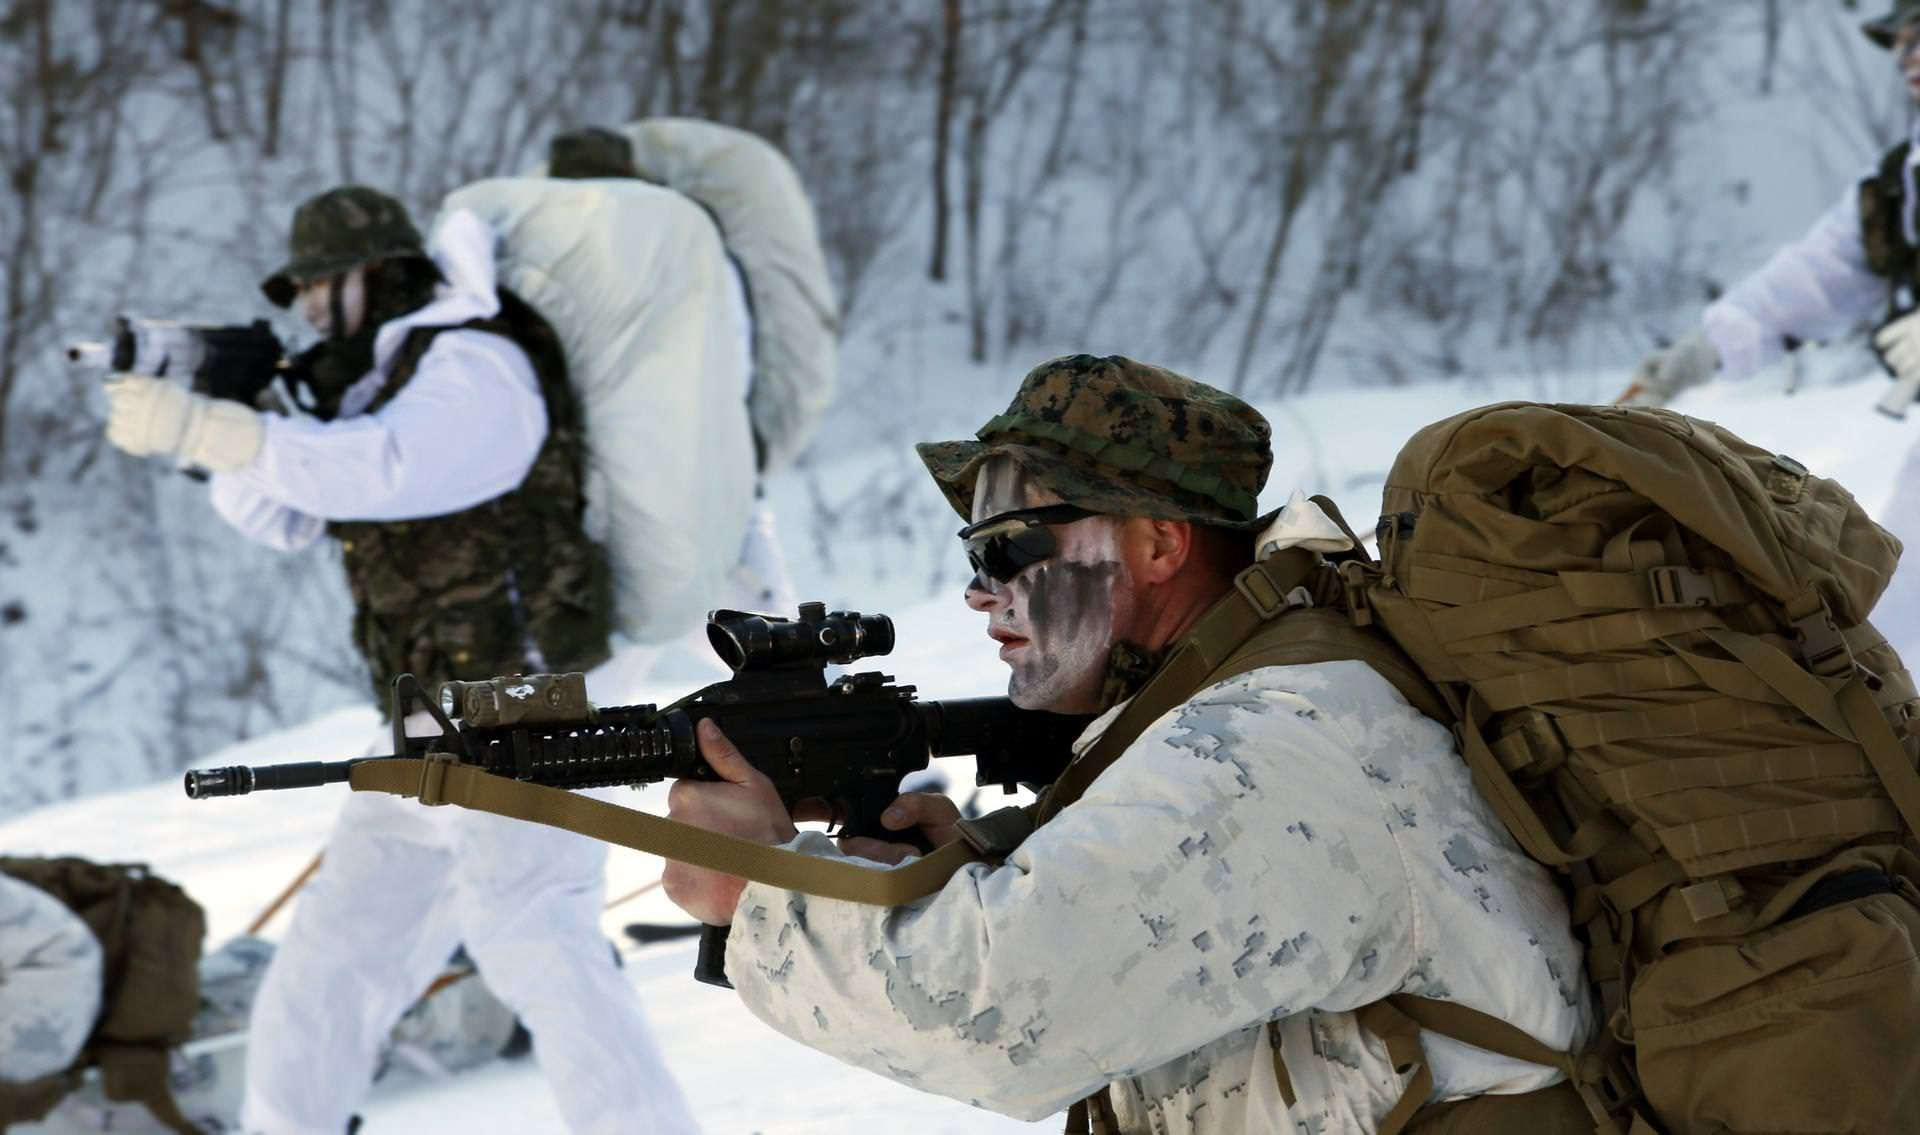 Us Marines Winter Camouflage Training During A Cold Weather Drill In South Korea 1920 1135 Marine General Cheap